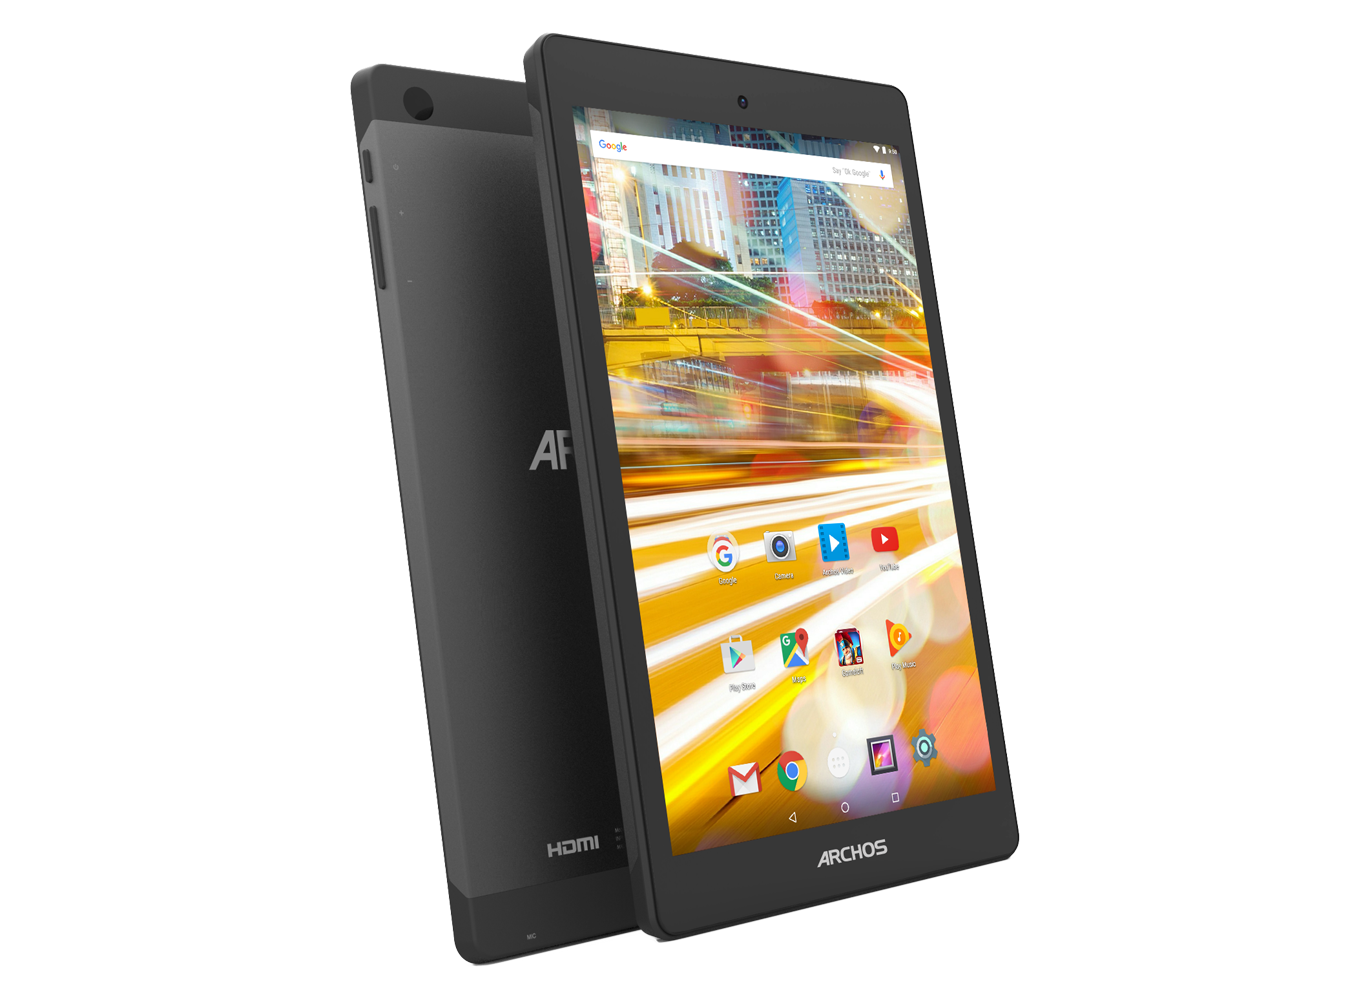 http://www.archos.com/img/products/tablets/oxygen/archos_80oxygen/gallery/archos_80oxygen-large_01.png